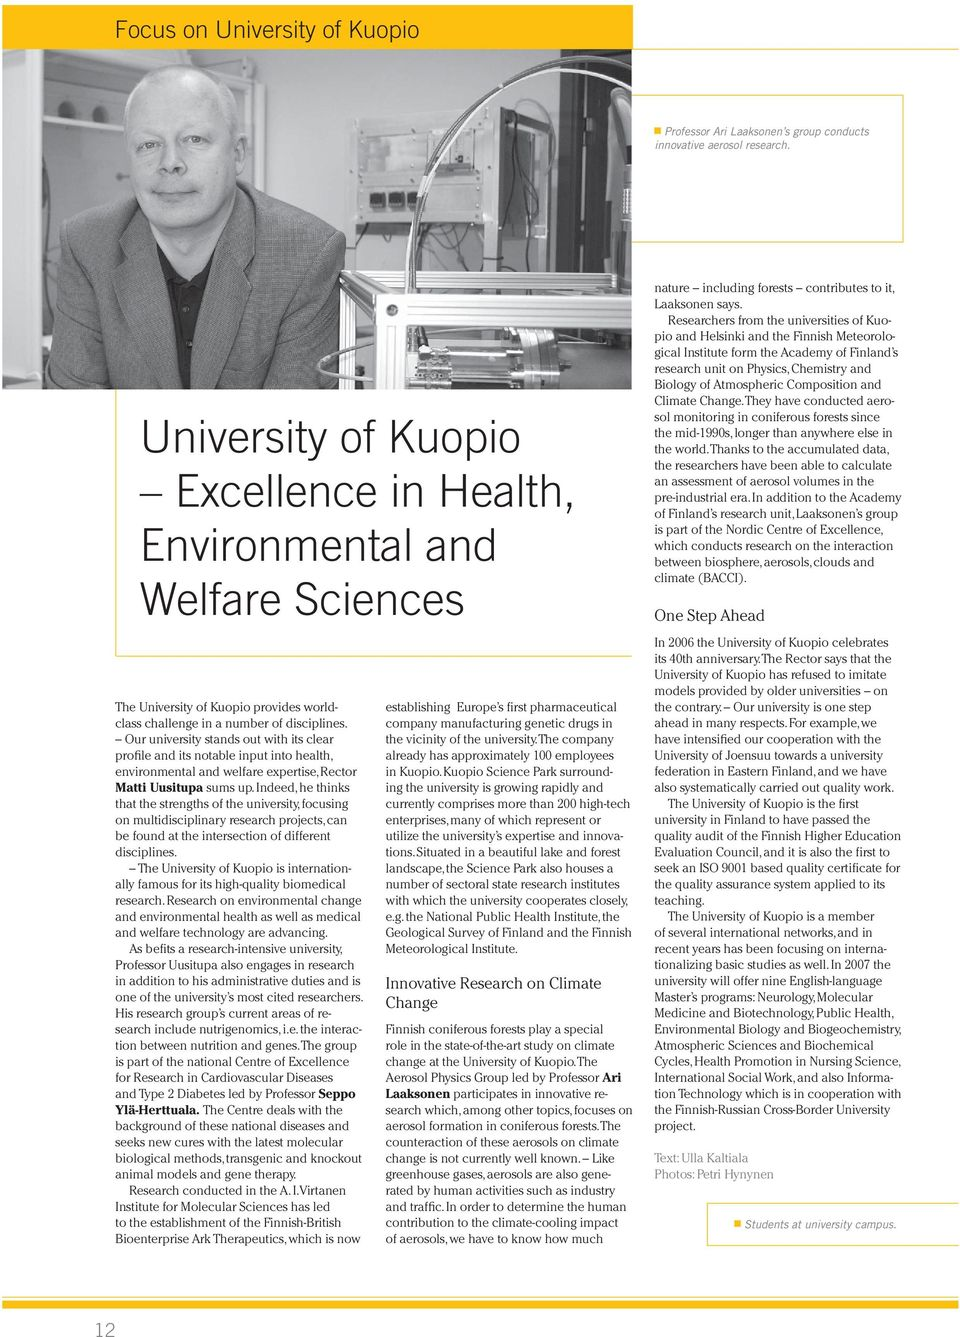 Our university stands out with its clear profile and its notable input into health, environmental and welfare expertise, Rector Matti Uusitupa sums up.